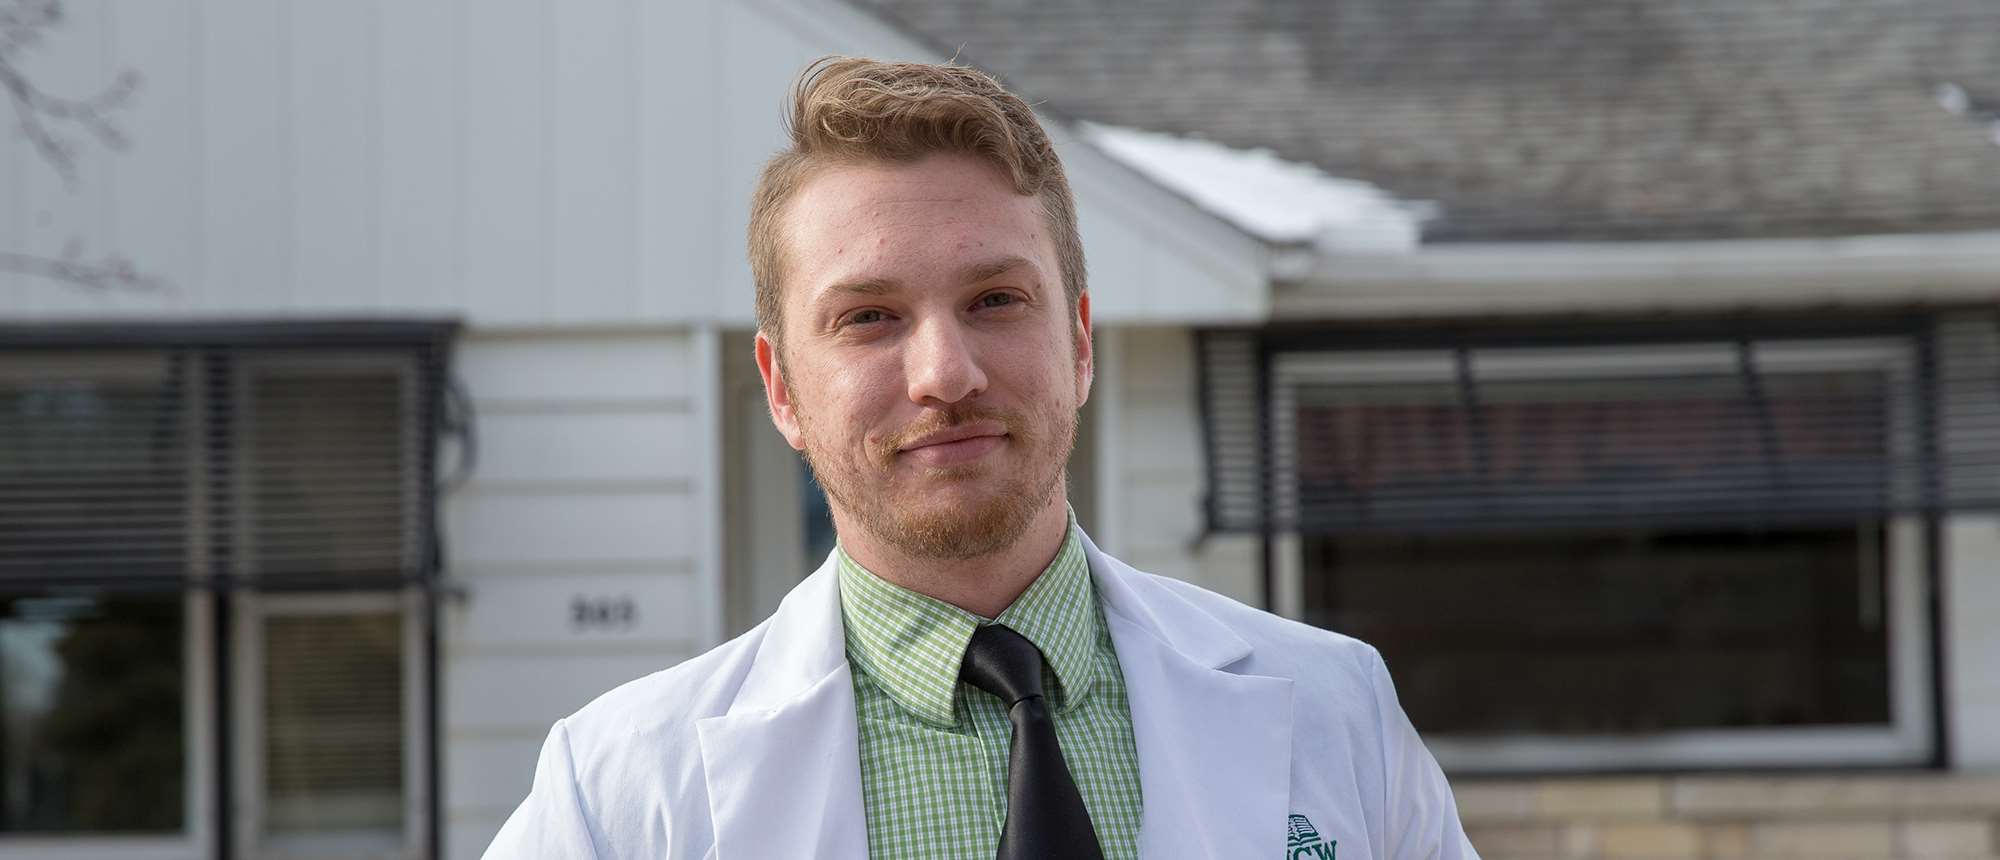 Gunnar Whealy, MCW medical student